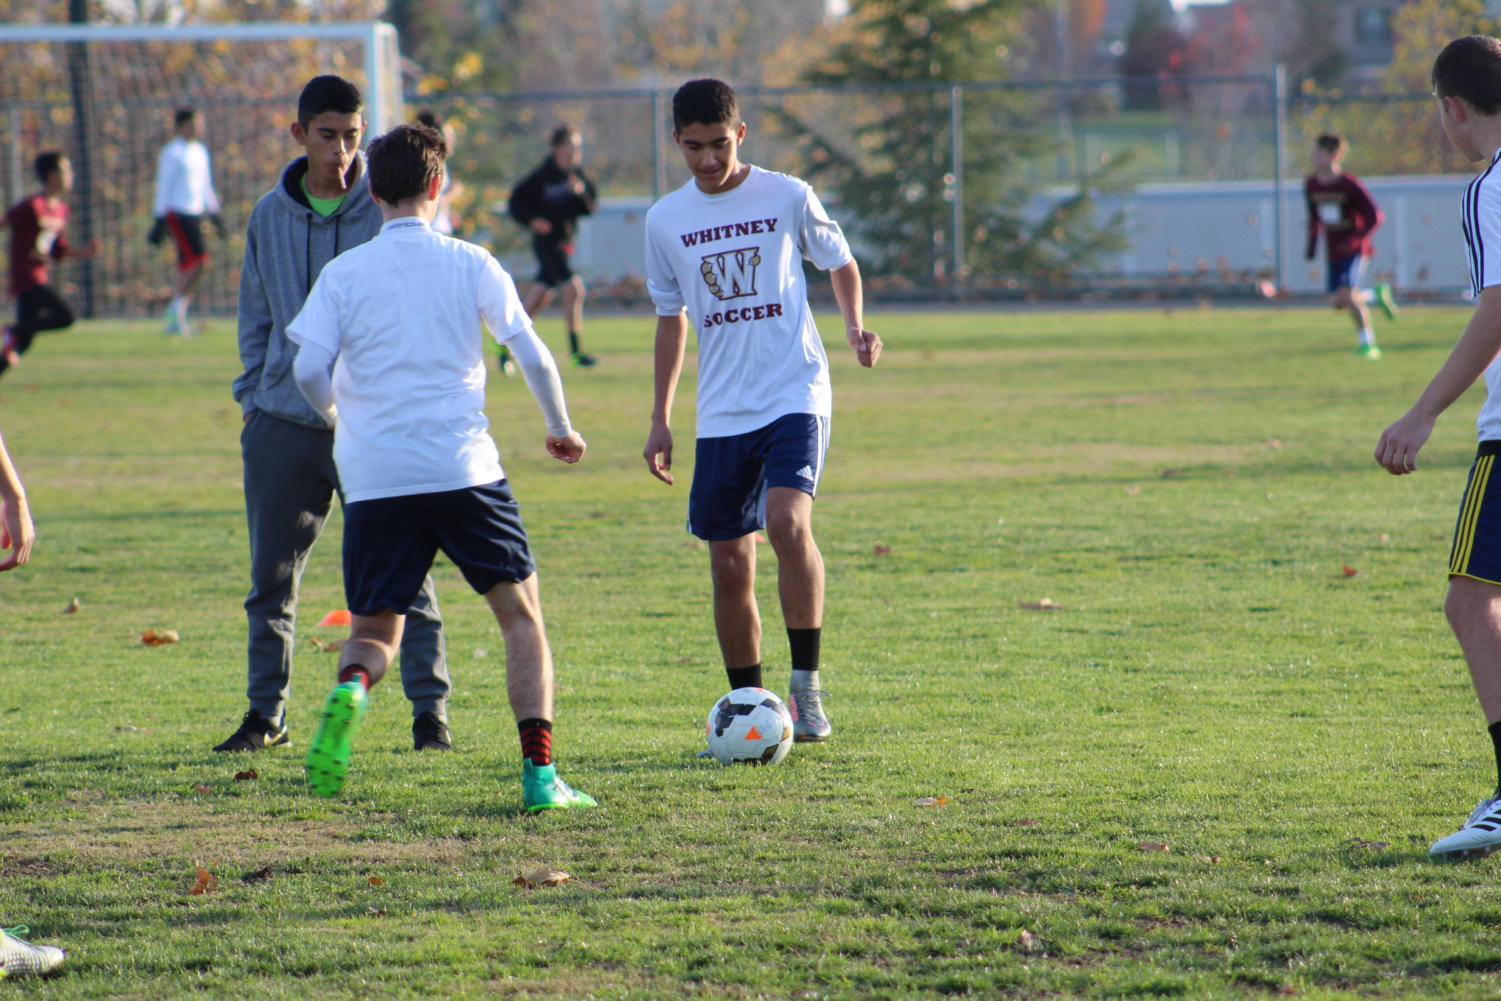 As a part of a keep away-drill used to improve passing skills, Miguel Saavedra dribbles around Nate Sherwood during practice Dec. 18. Photo by Blake Wong.